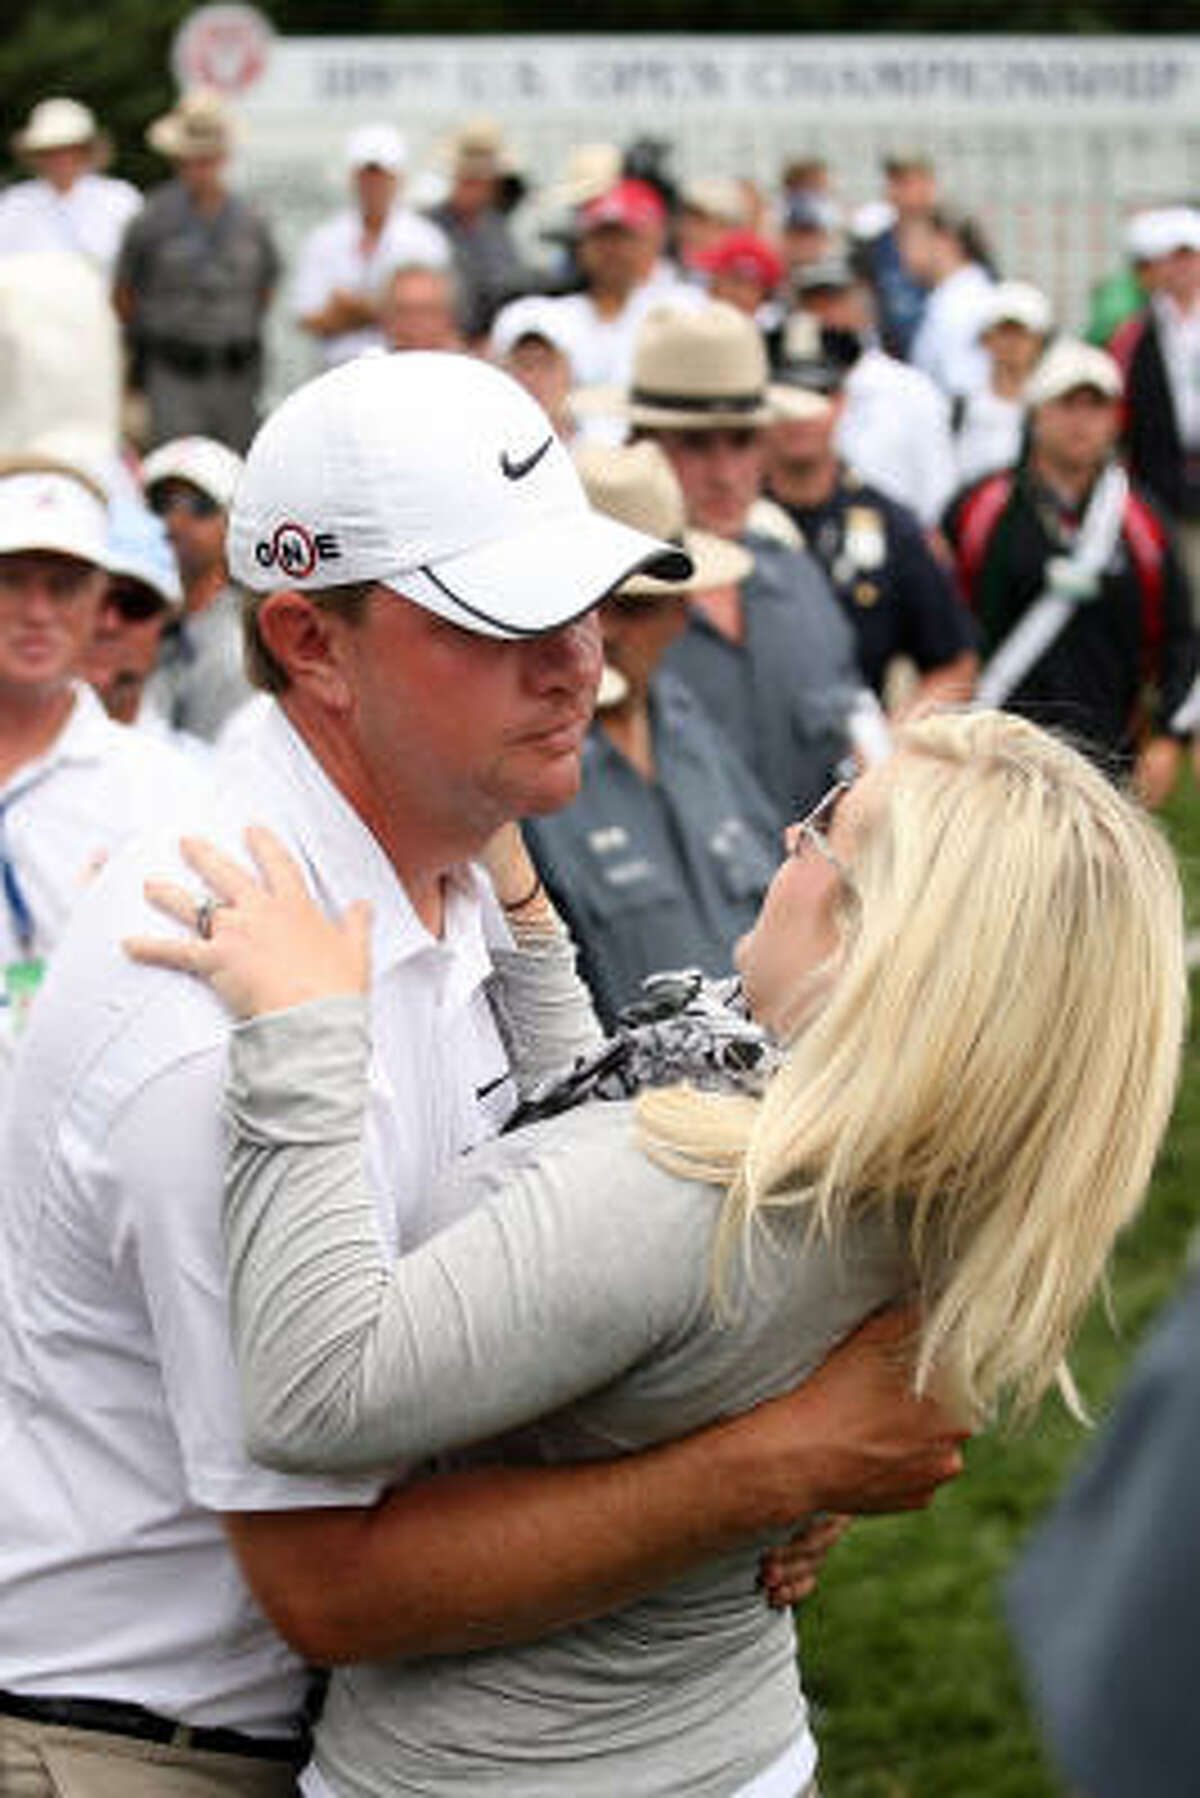 Lucas Glover celebrates his two-stroke victory with his wife, Jennifer, at the 109th U.S. Open.